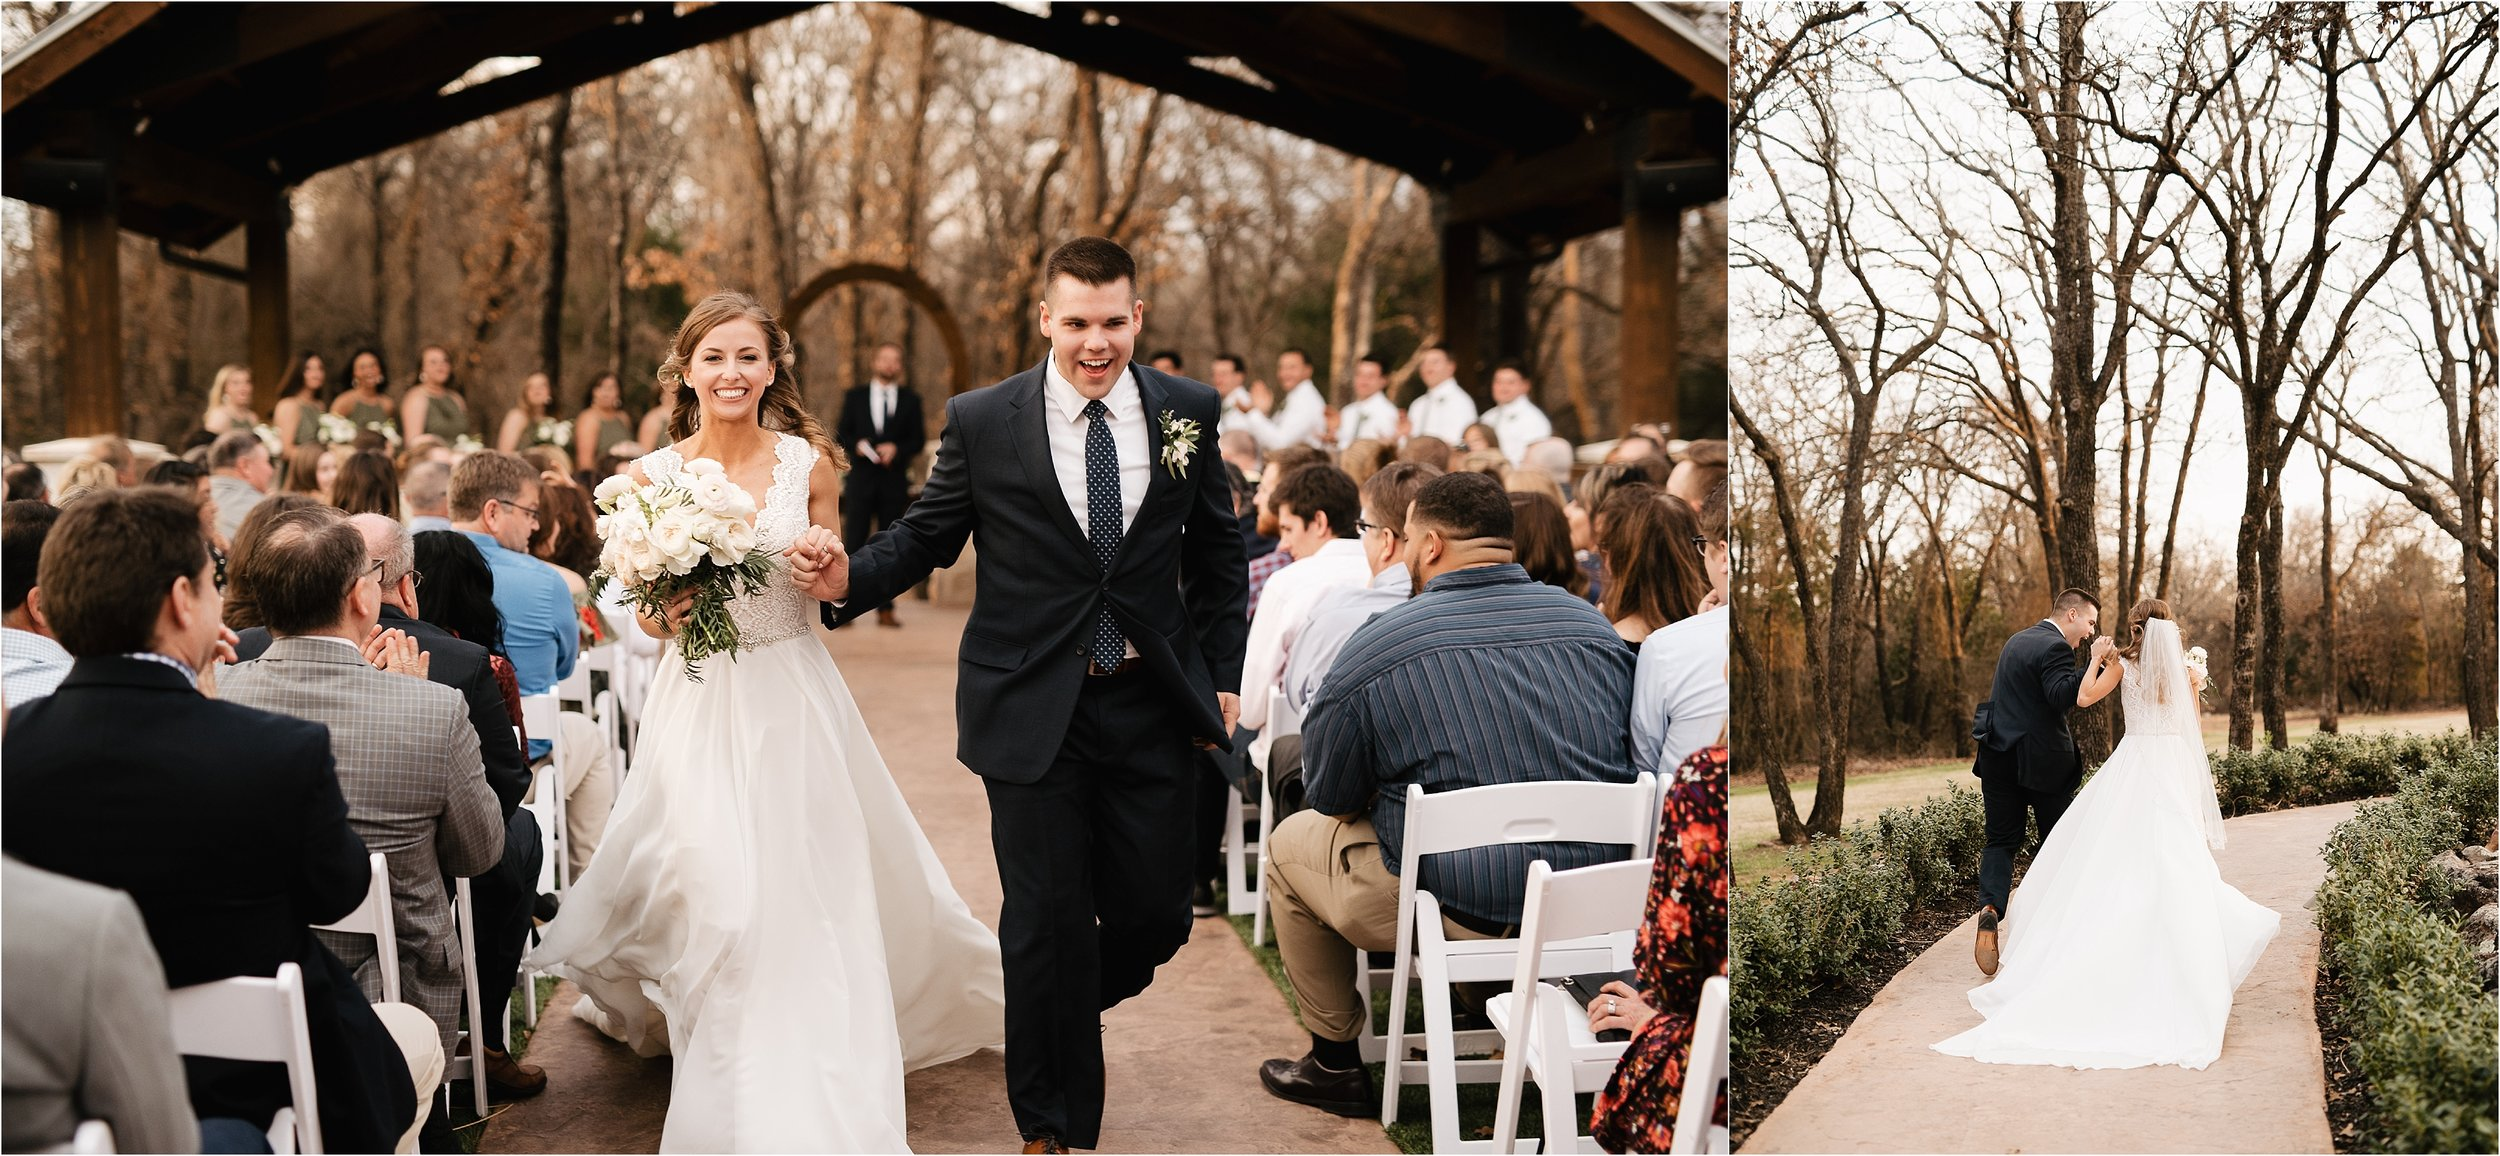 the springs norman oklahoma city wedding photographer outdoor ceremony reception wedding venue overcast family friends recessional